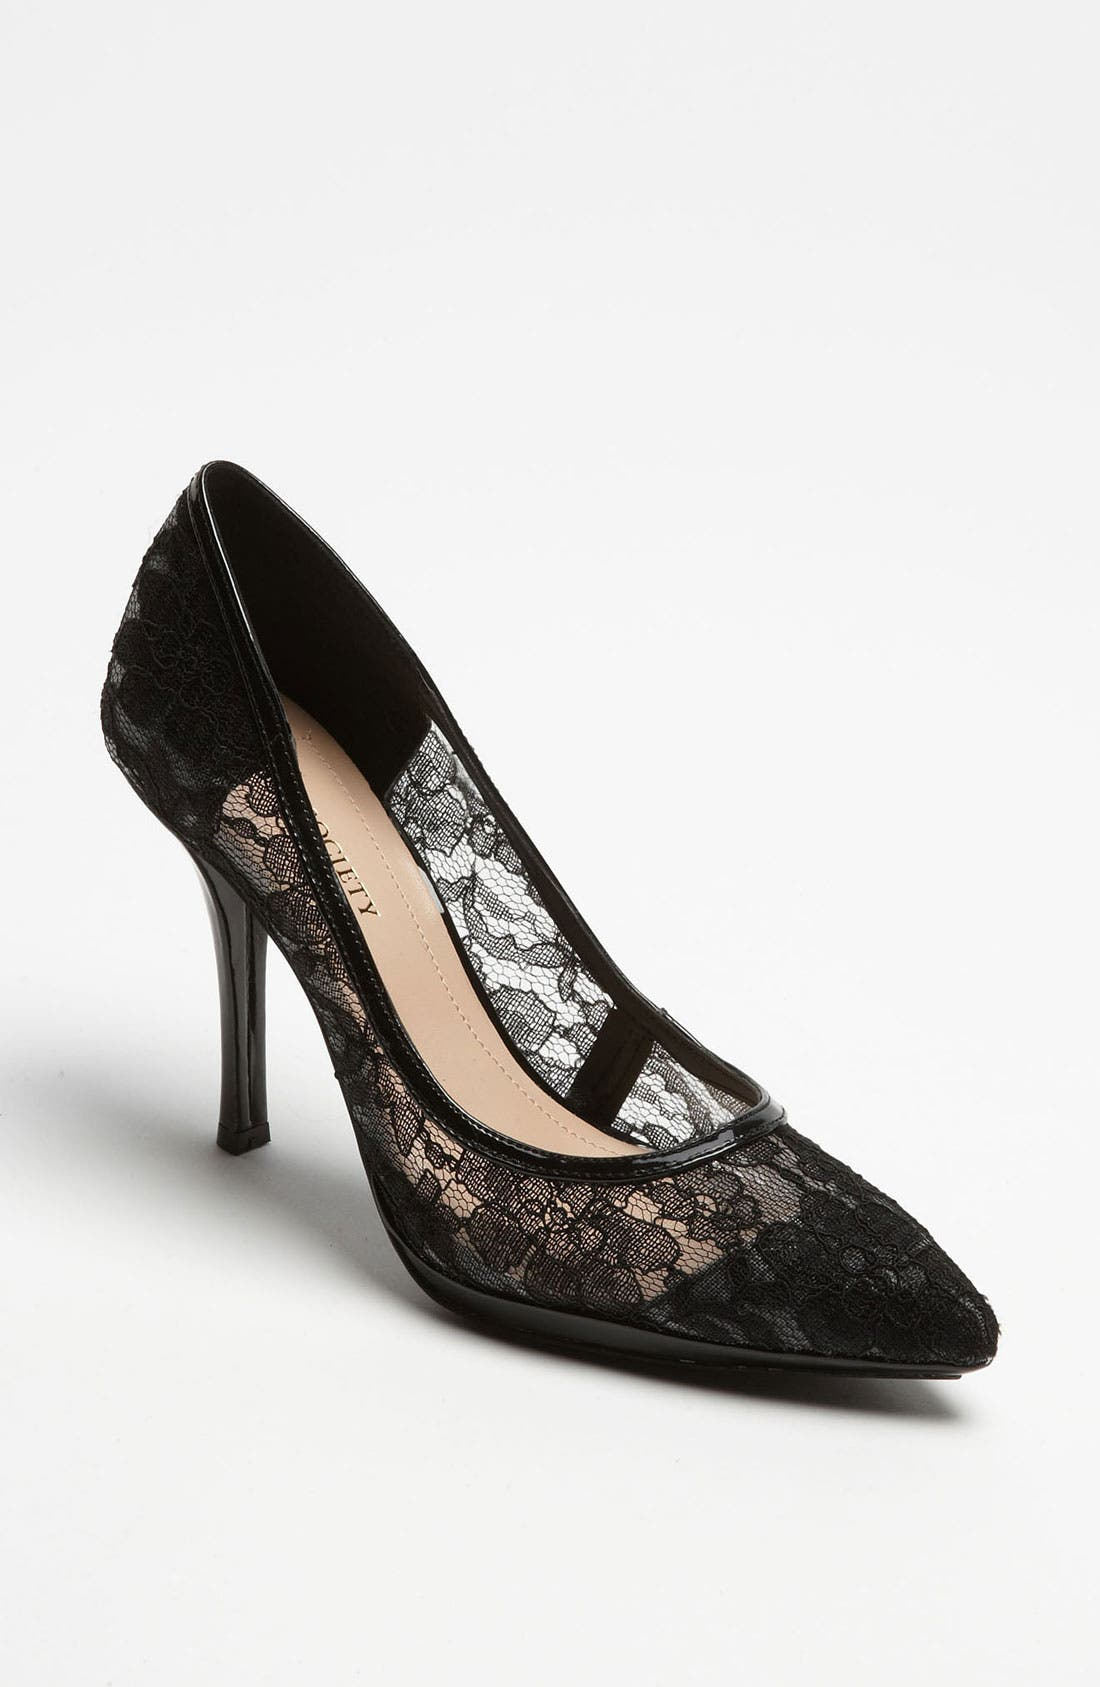 Alternate Image 1 Selected - Sole Society 'Chandra' Pump